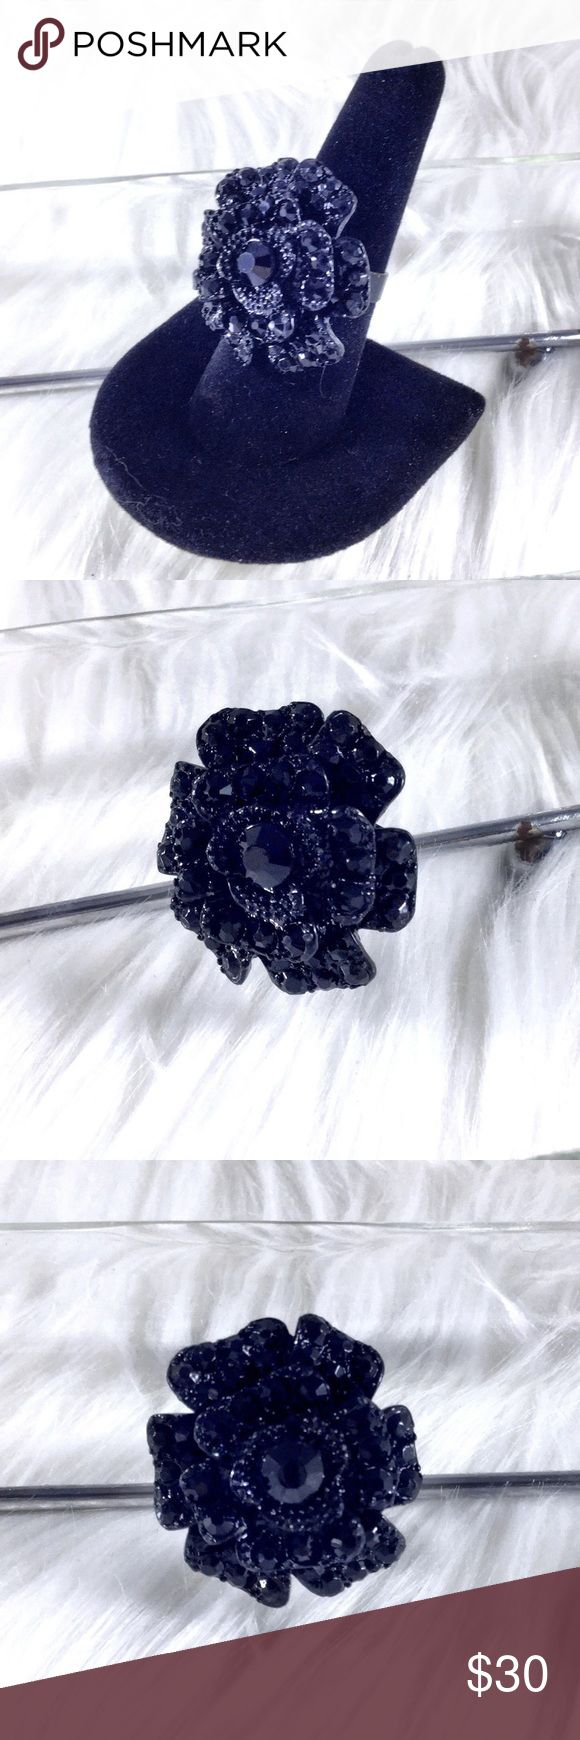 "Gothic Black Marcasite Crystal Rose Statement Ring Large open rose 🌹 all black metal with black faceted shiny crystals pave Marcasite style. Adjustable 8+. Rose is 1"" x 1"". Cocktail statement ring 1 available contrast is played with so you see the detail in crystals. Gothic Baroque art nouveau Victorian mourning jewelry bohemian.   🌟 Save the most with bundles. I offer 25% OFF on 2+ items and accept reasonable offers on items & bundles. NO trades/holds/lowball offers. Boutique Jewelry…"